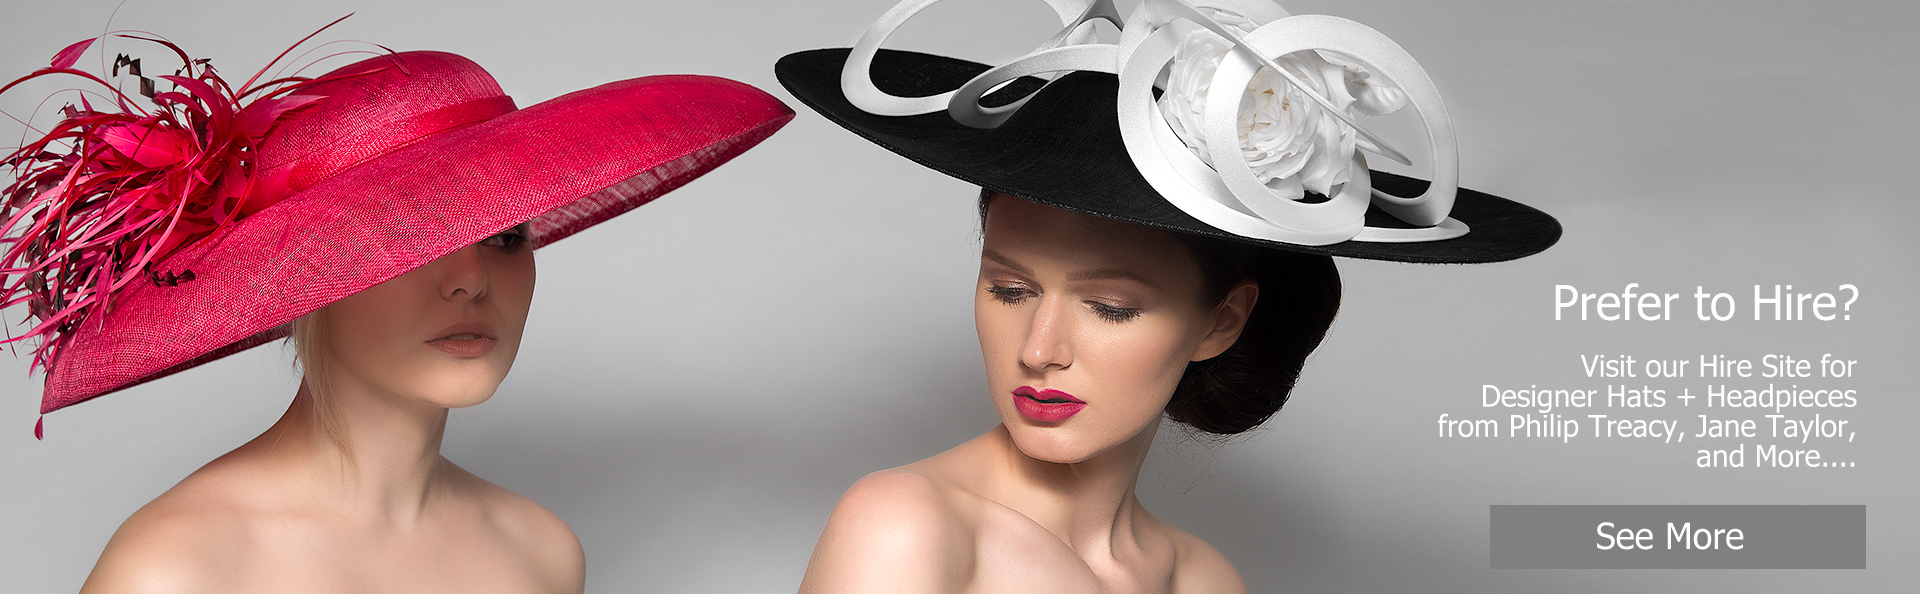 Designer Hat Hire Berkshire, Surrey, London or Mail Order for Racing or Weddings, Mother of the Bride Hats. The only Hat Hire at Royal Ascot Races, book online, collect and return on the day for Mens and Ladies Hats